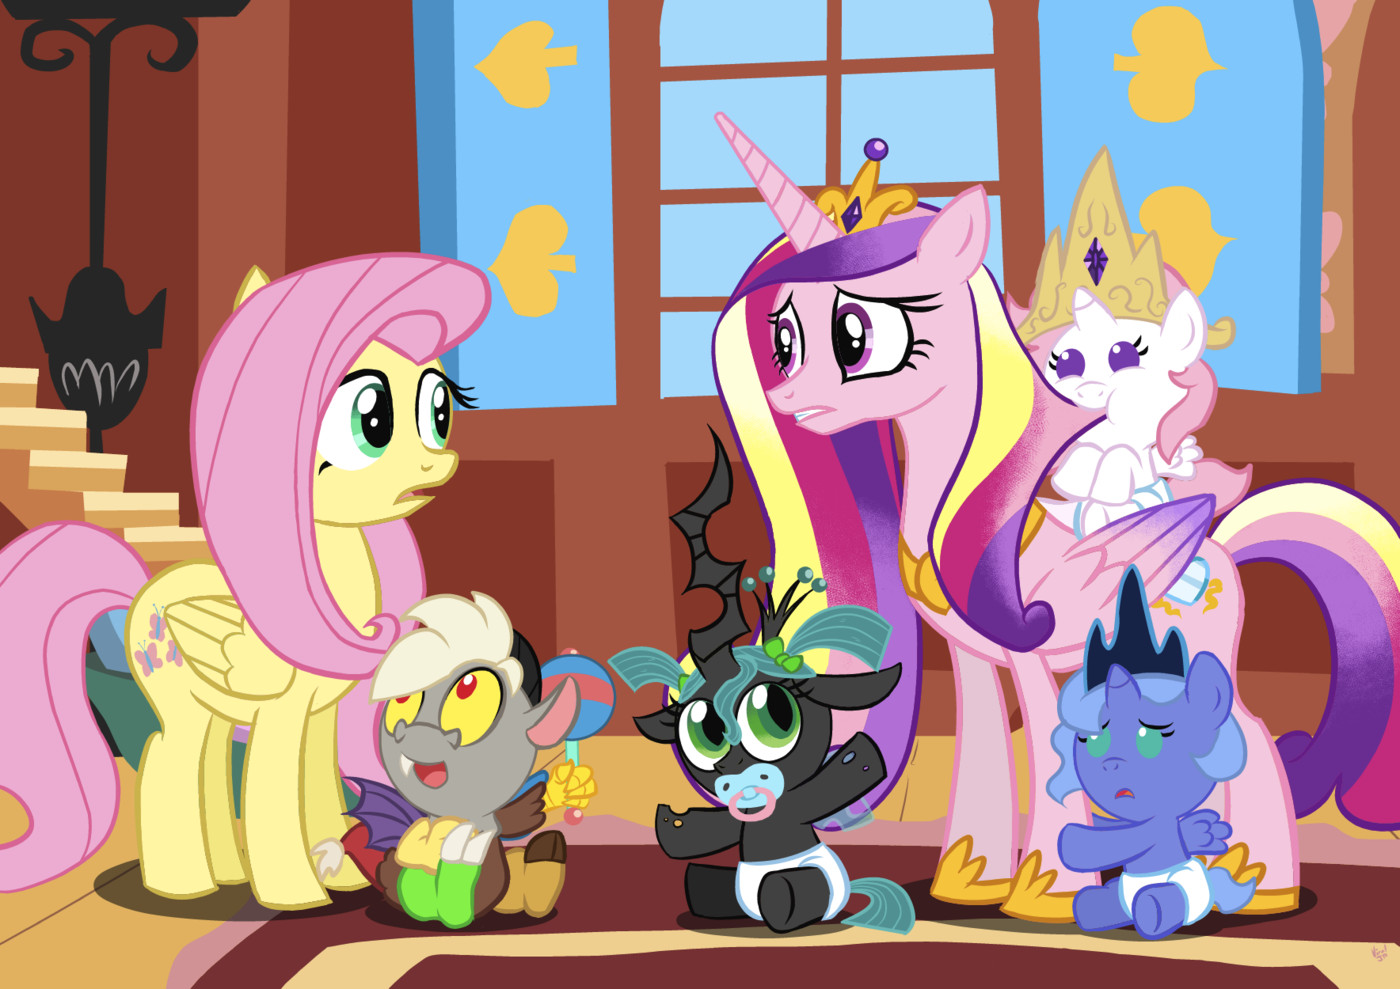 Baby Discord And Fluttershy Before commenting  read the